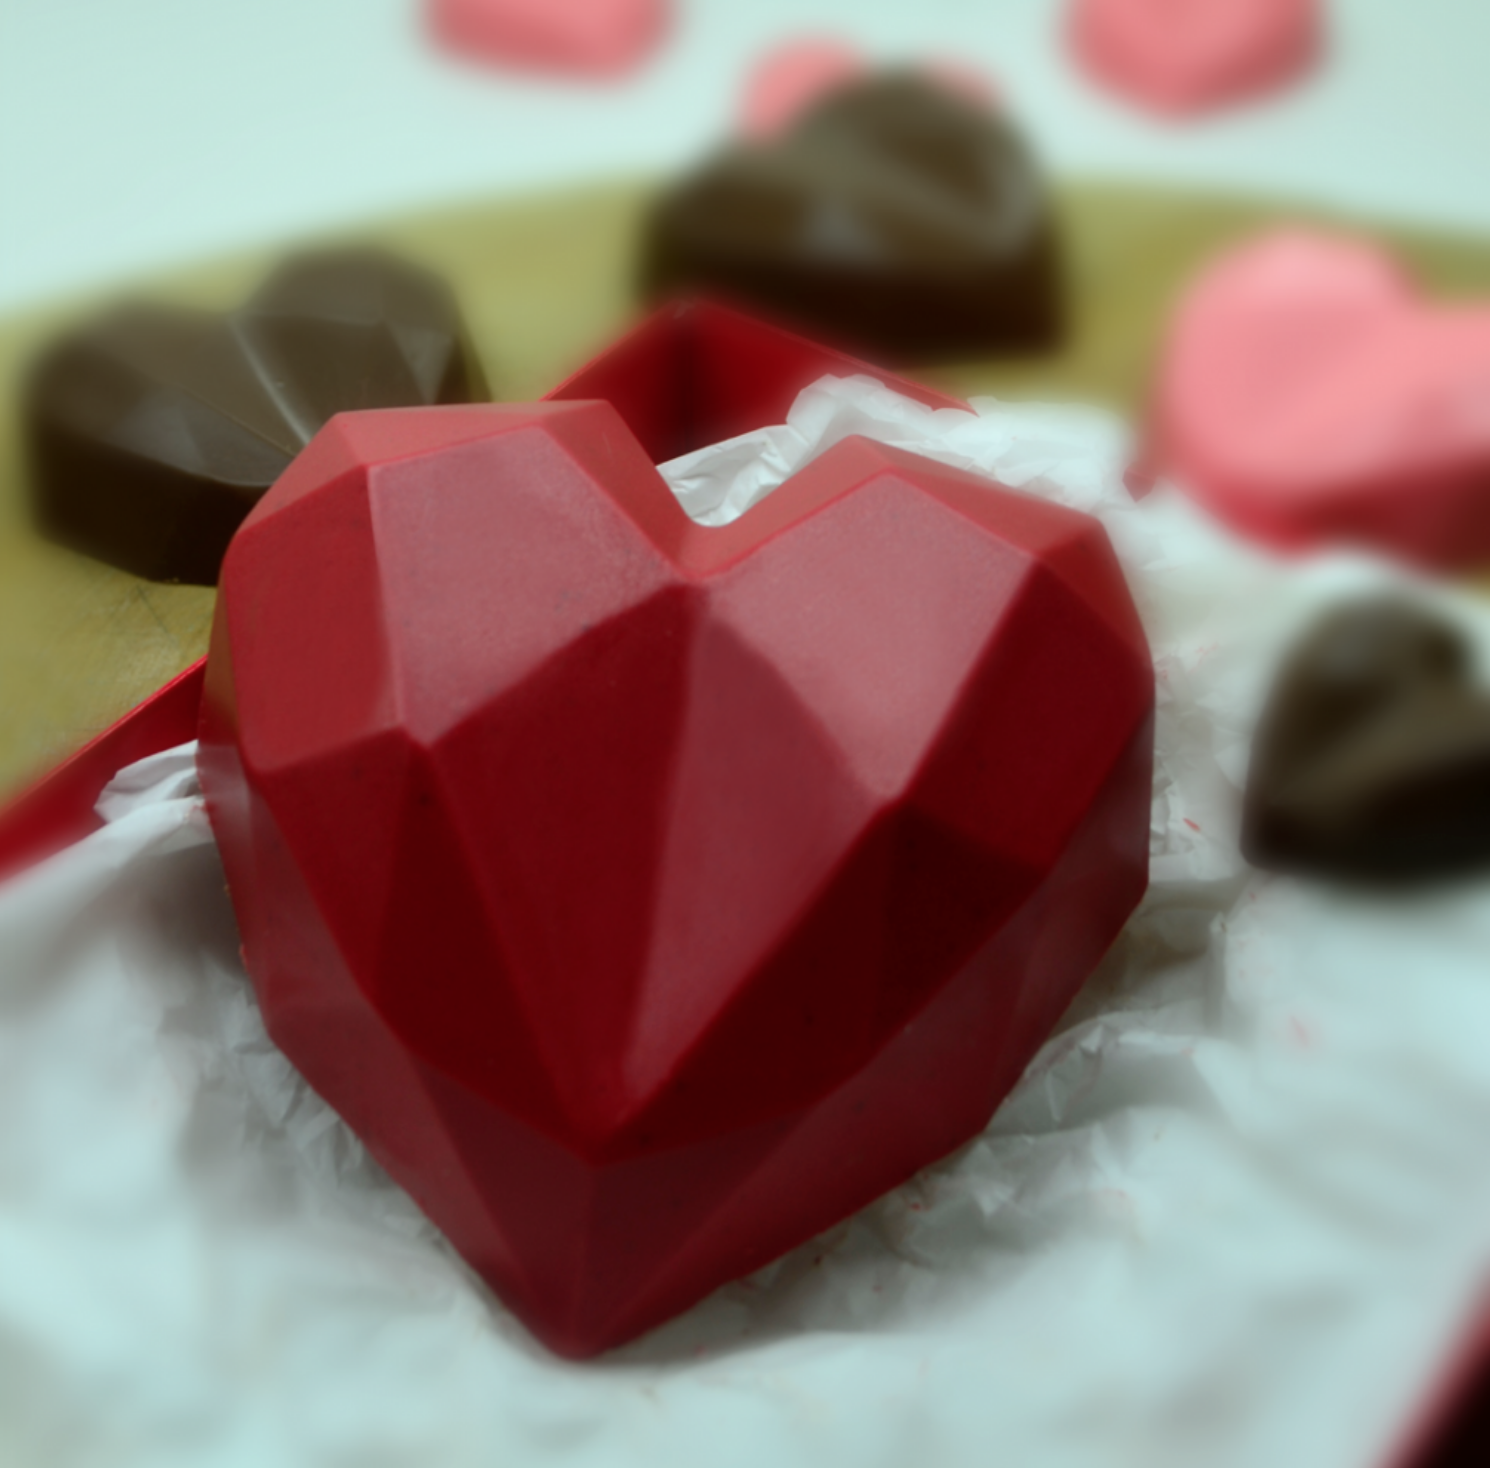 Faceted Heart - 200 Grams - 3 Part Mold - PRE-ORDER - Arriving Jan. 19th